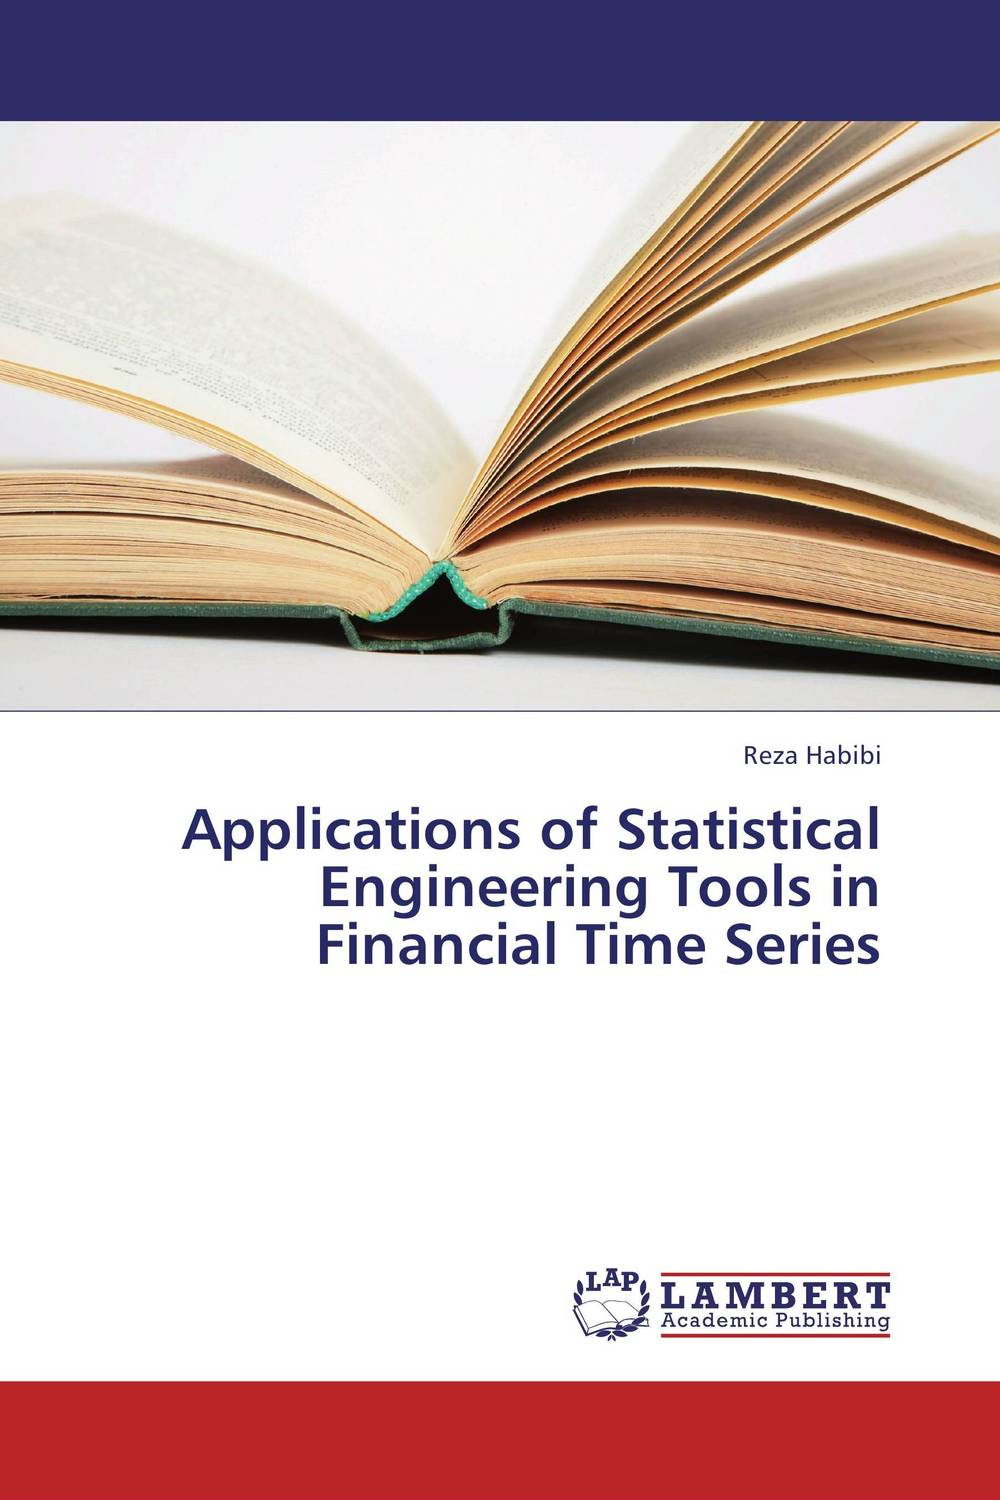 Applications of Statistical Engineering Tools in Financial Time Series paolo brandimarte handbook in monte carlo simulation applications in financial engineering risk management and economics